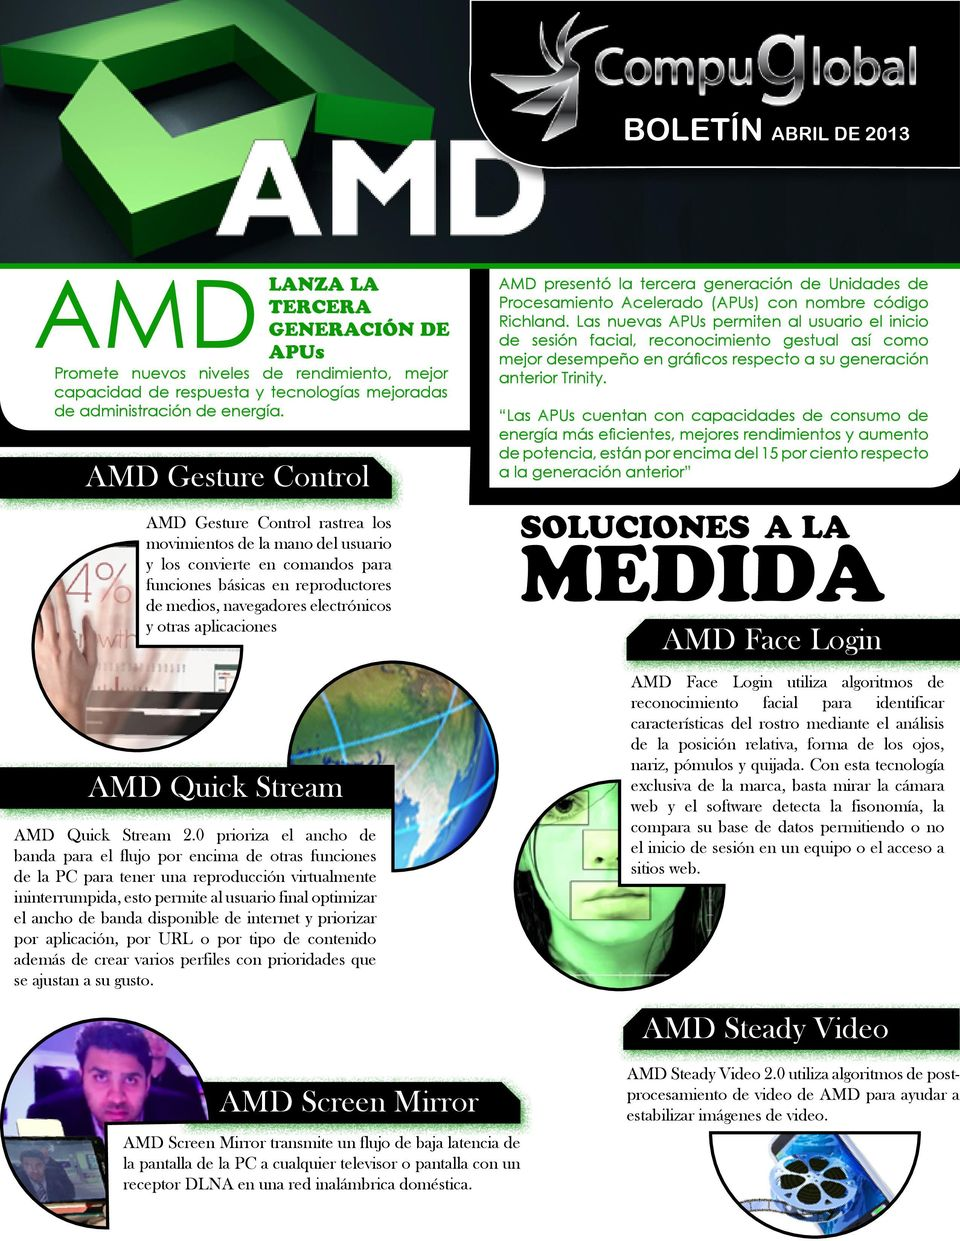 aplicaciones AMD Quick Stream AMD Quick Stream 2.